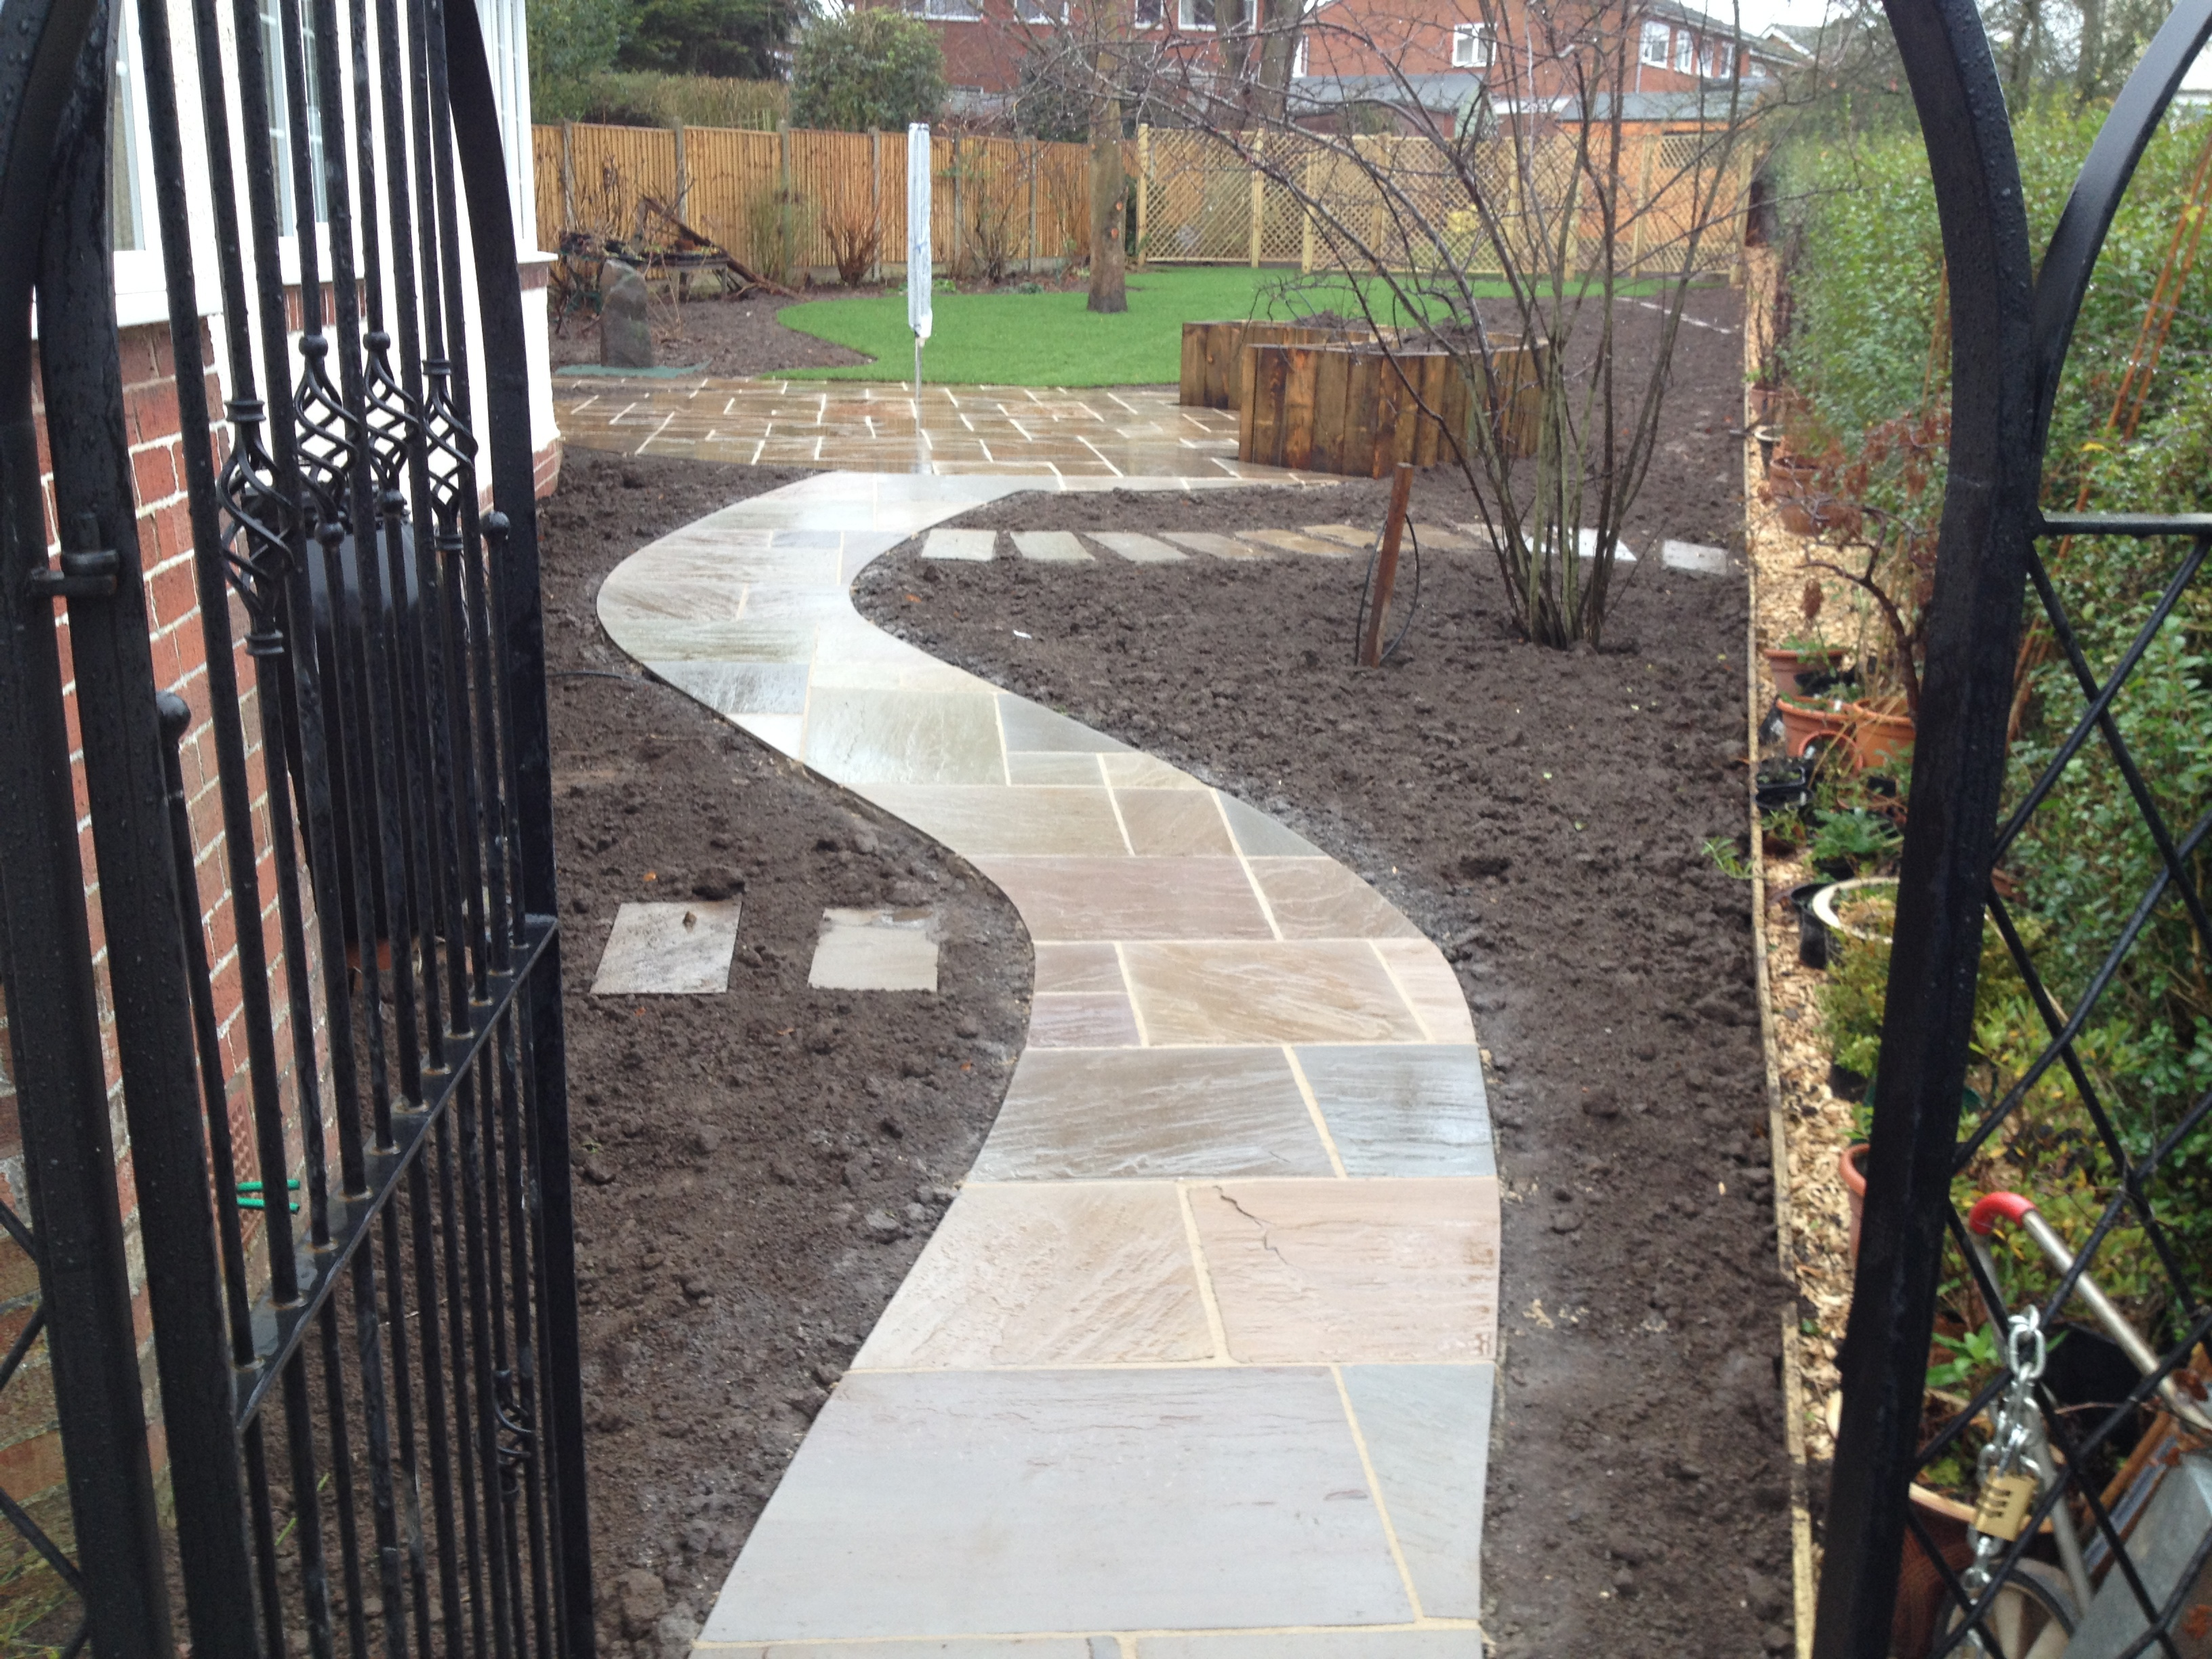 Pathway laying